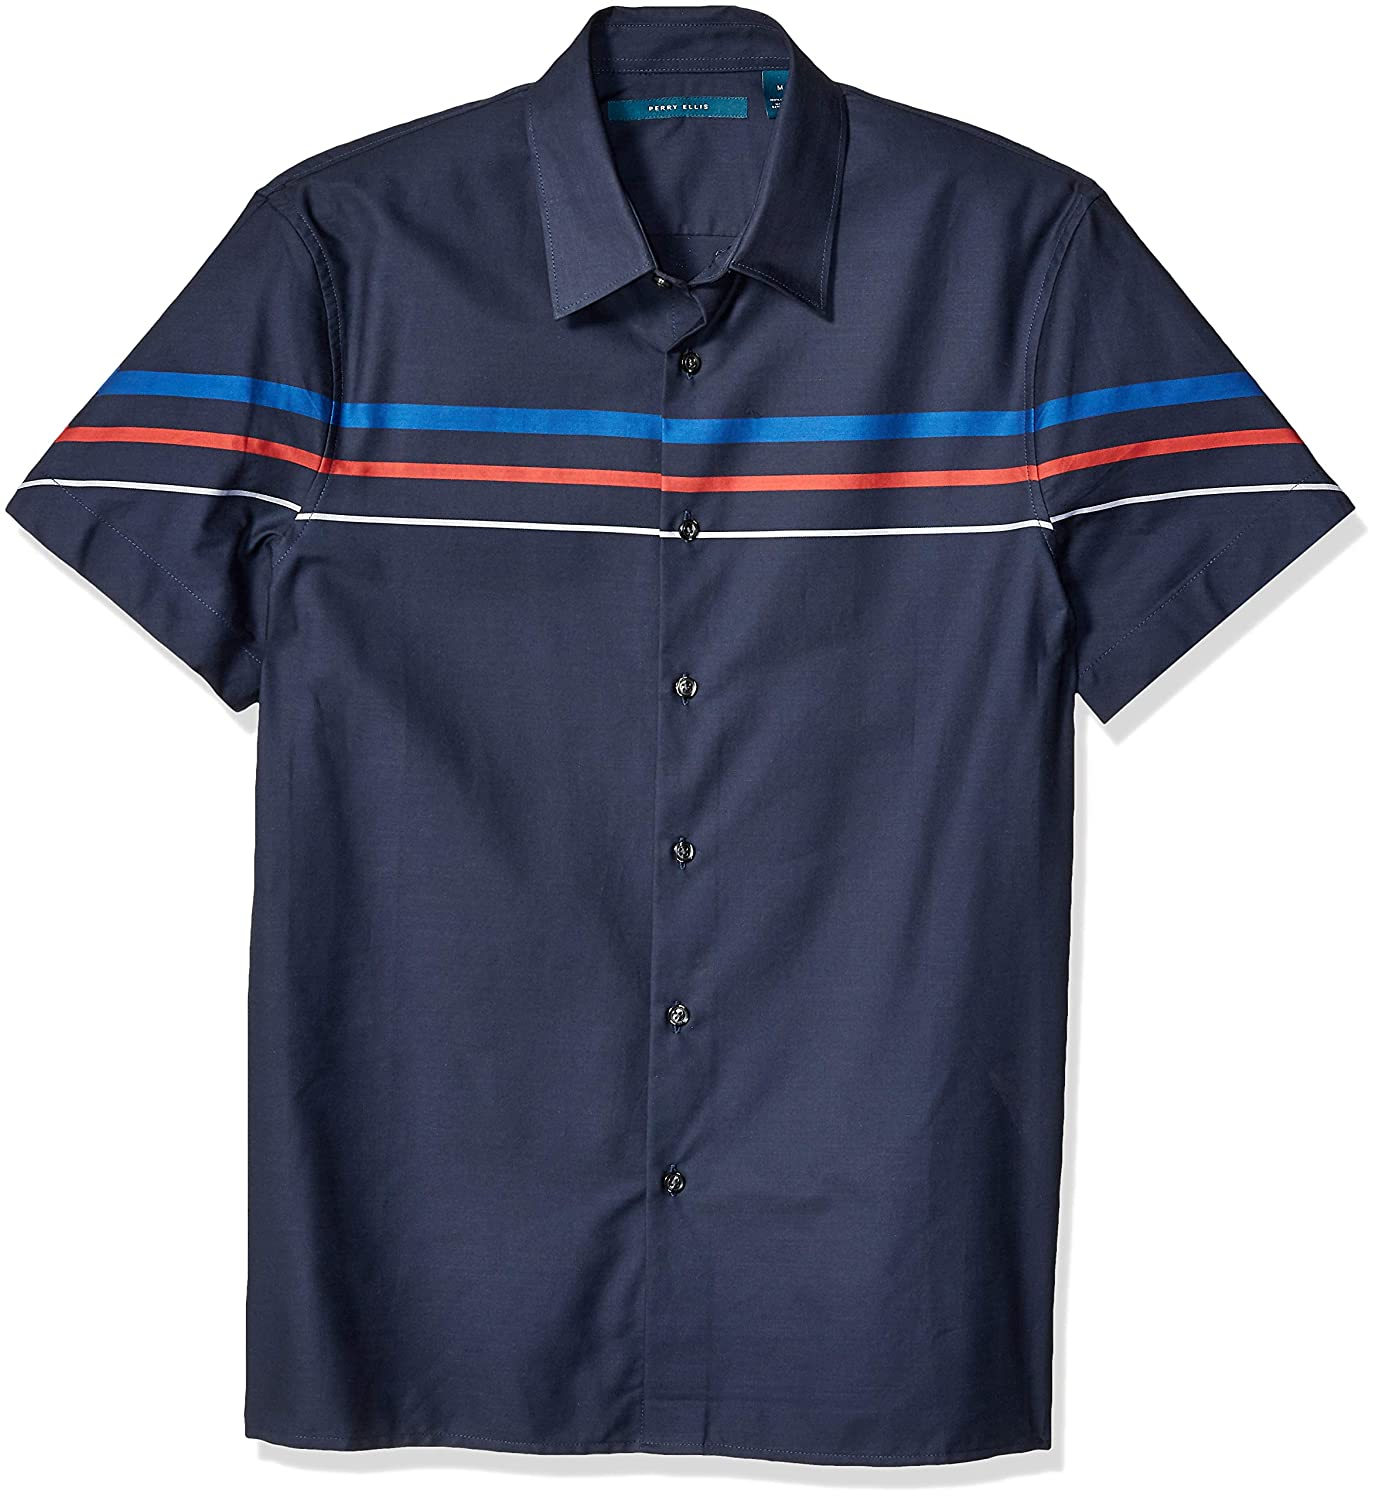 Mens Vintage Shirts – Casual, Dress, T-shirts, Polos Perry Ellis Mens Engineered Stripe Sateen Slub Shirt $50.67 AT vintagedancer.com